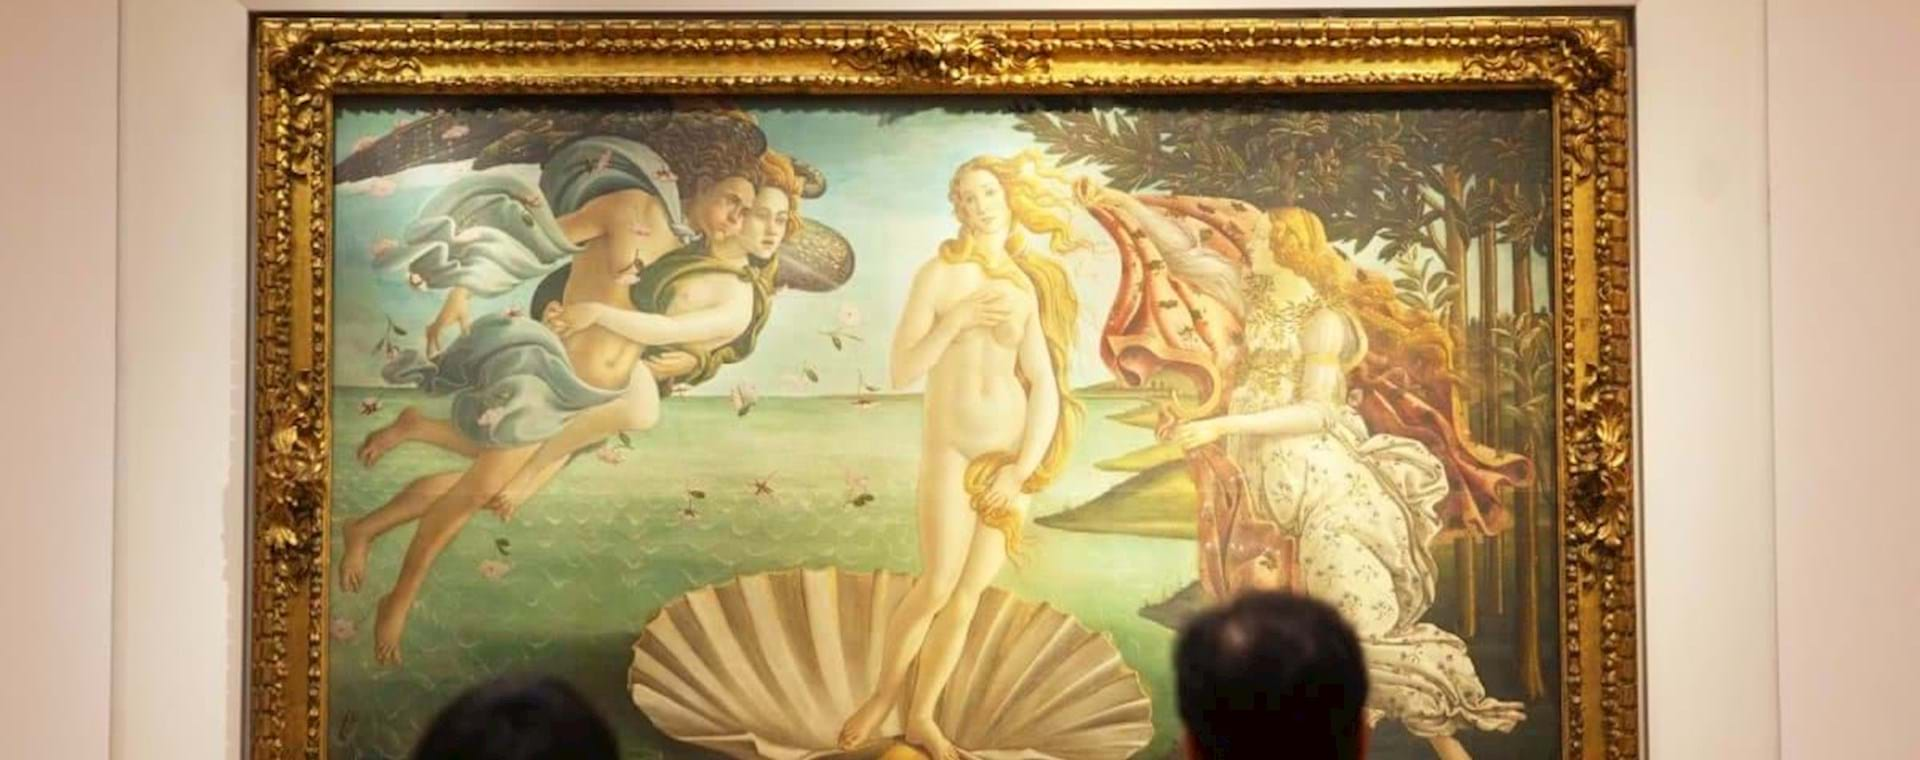 people admiring the beautiful painting of the Birth of Venus